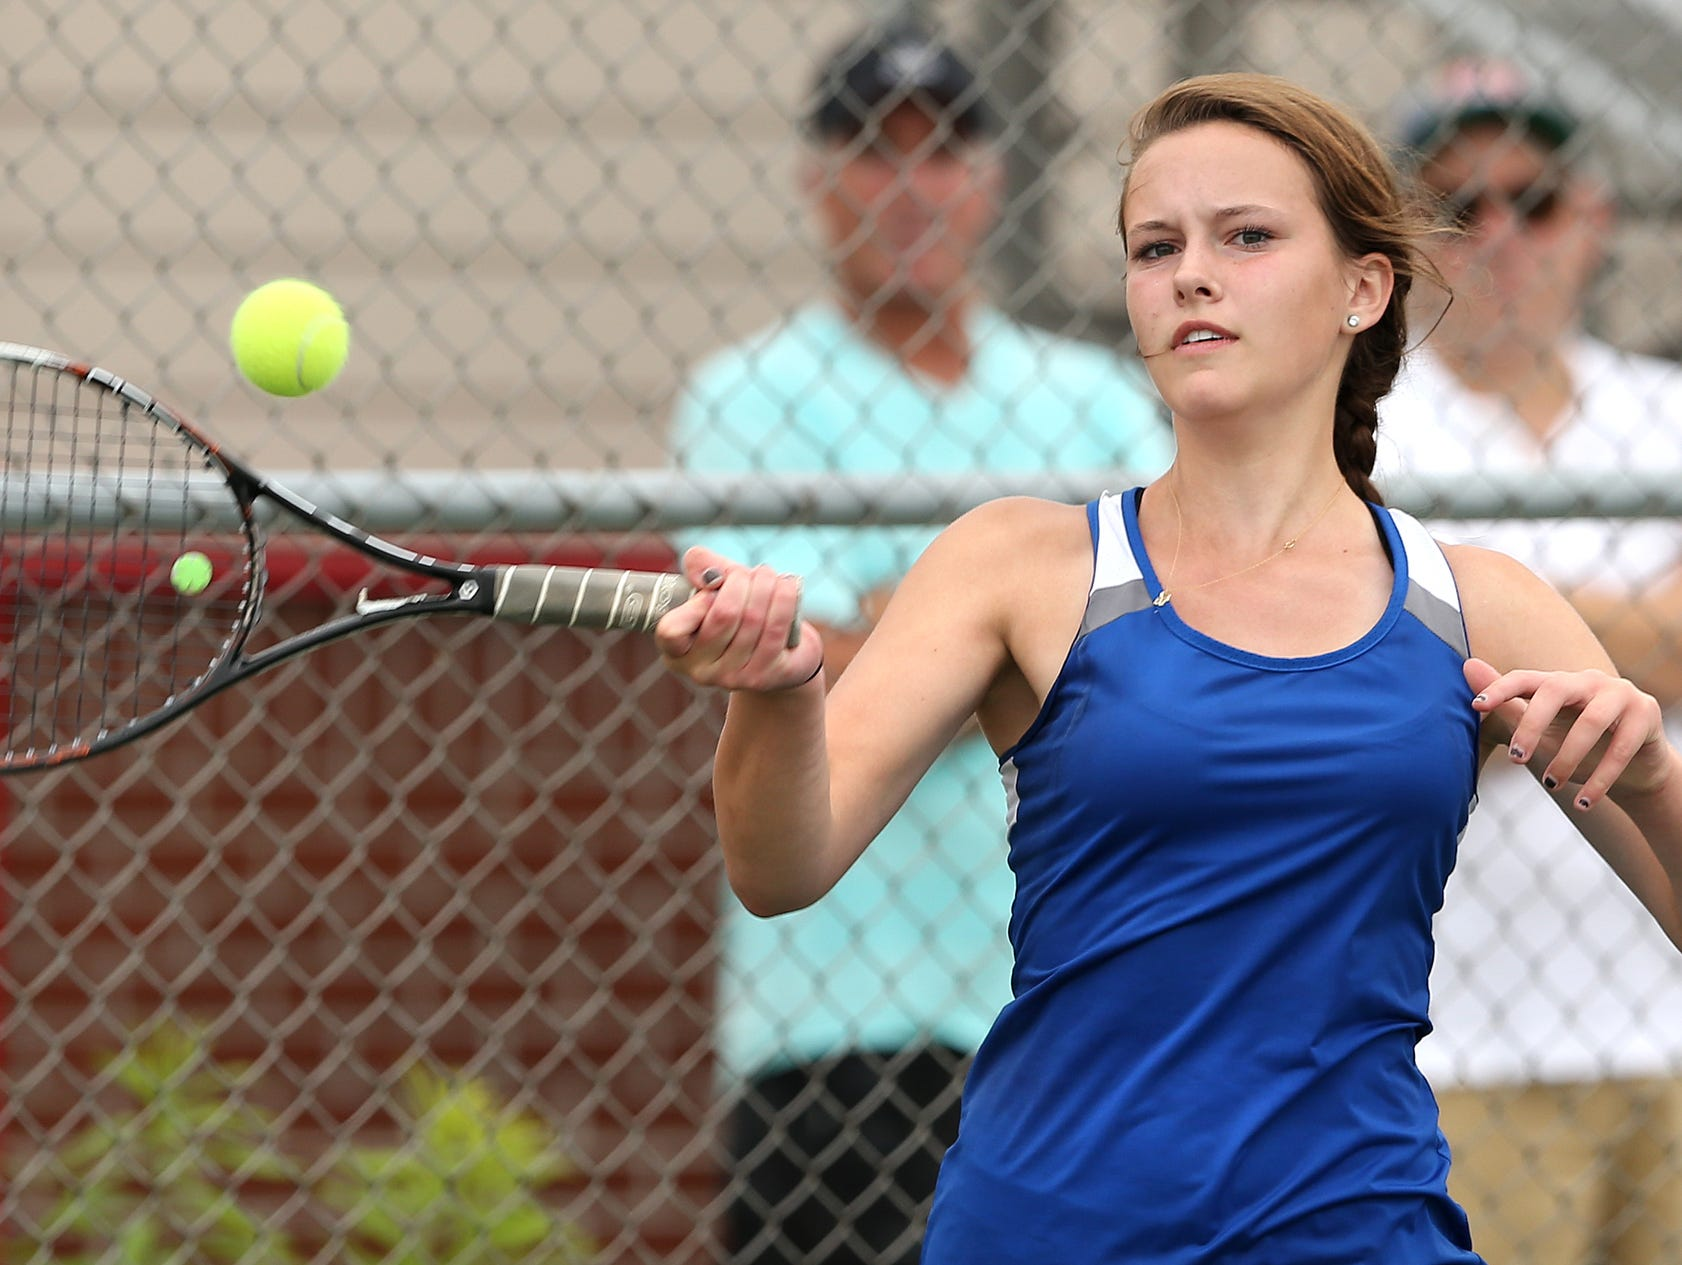 Carmel's Zoe Woods returns a shot during the IHSAA state tennis finals held at North Central High School on June 6, 2015.